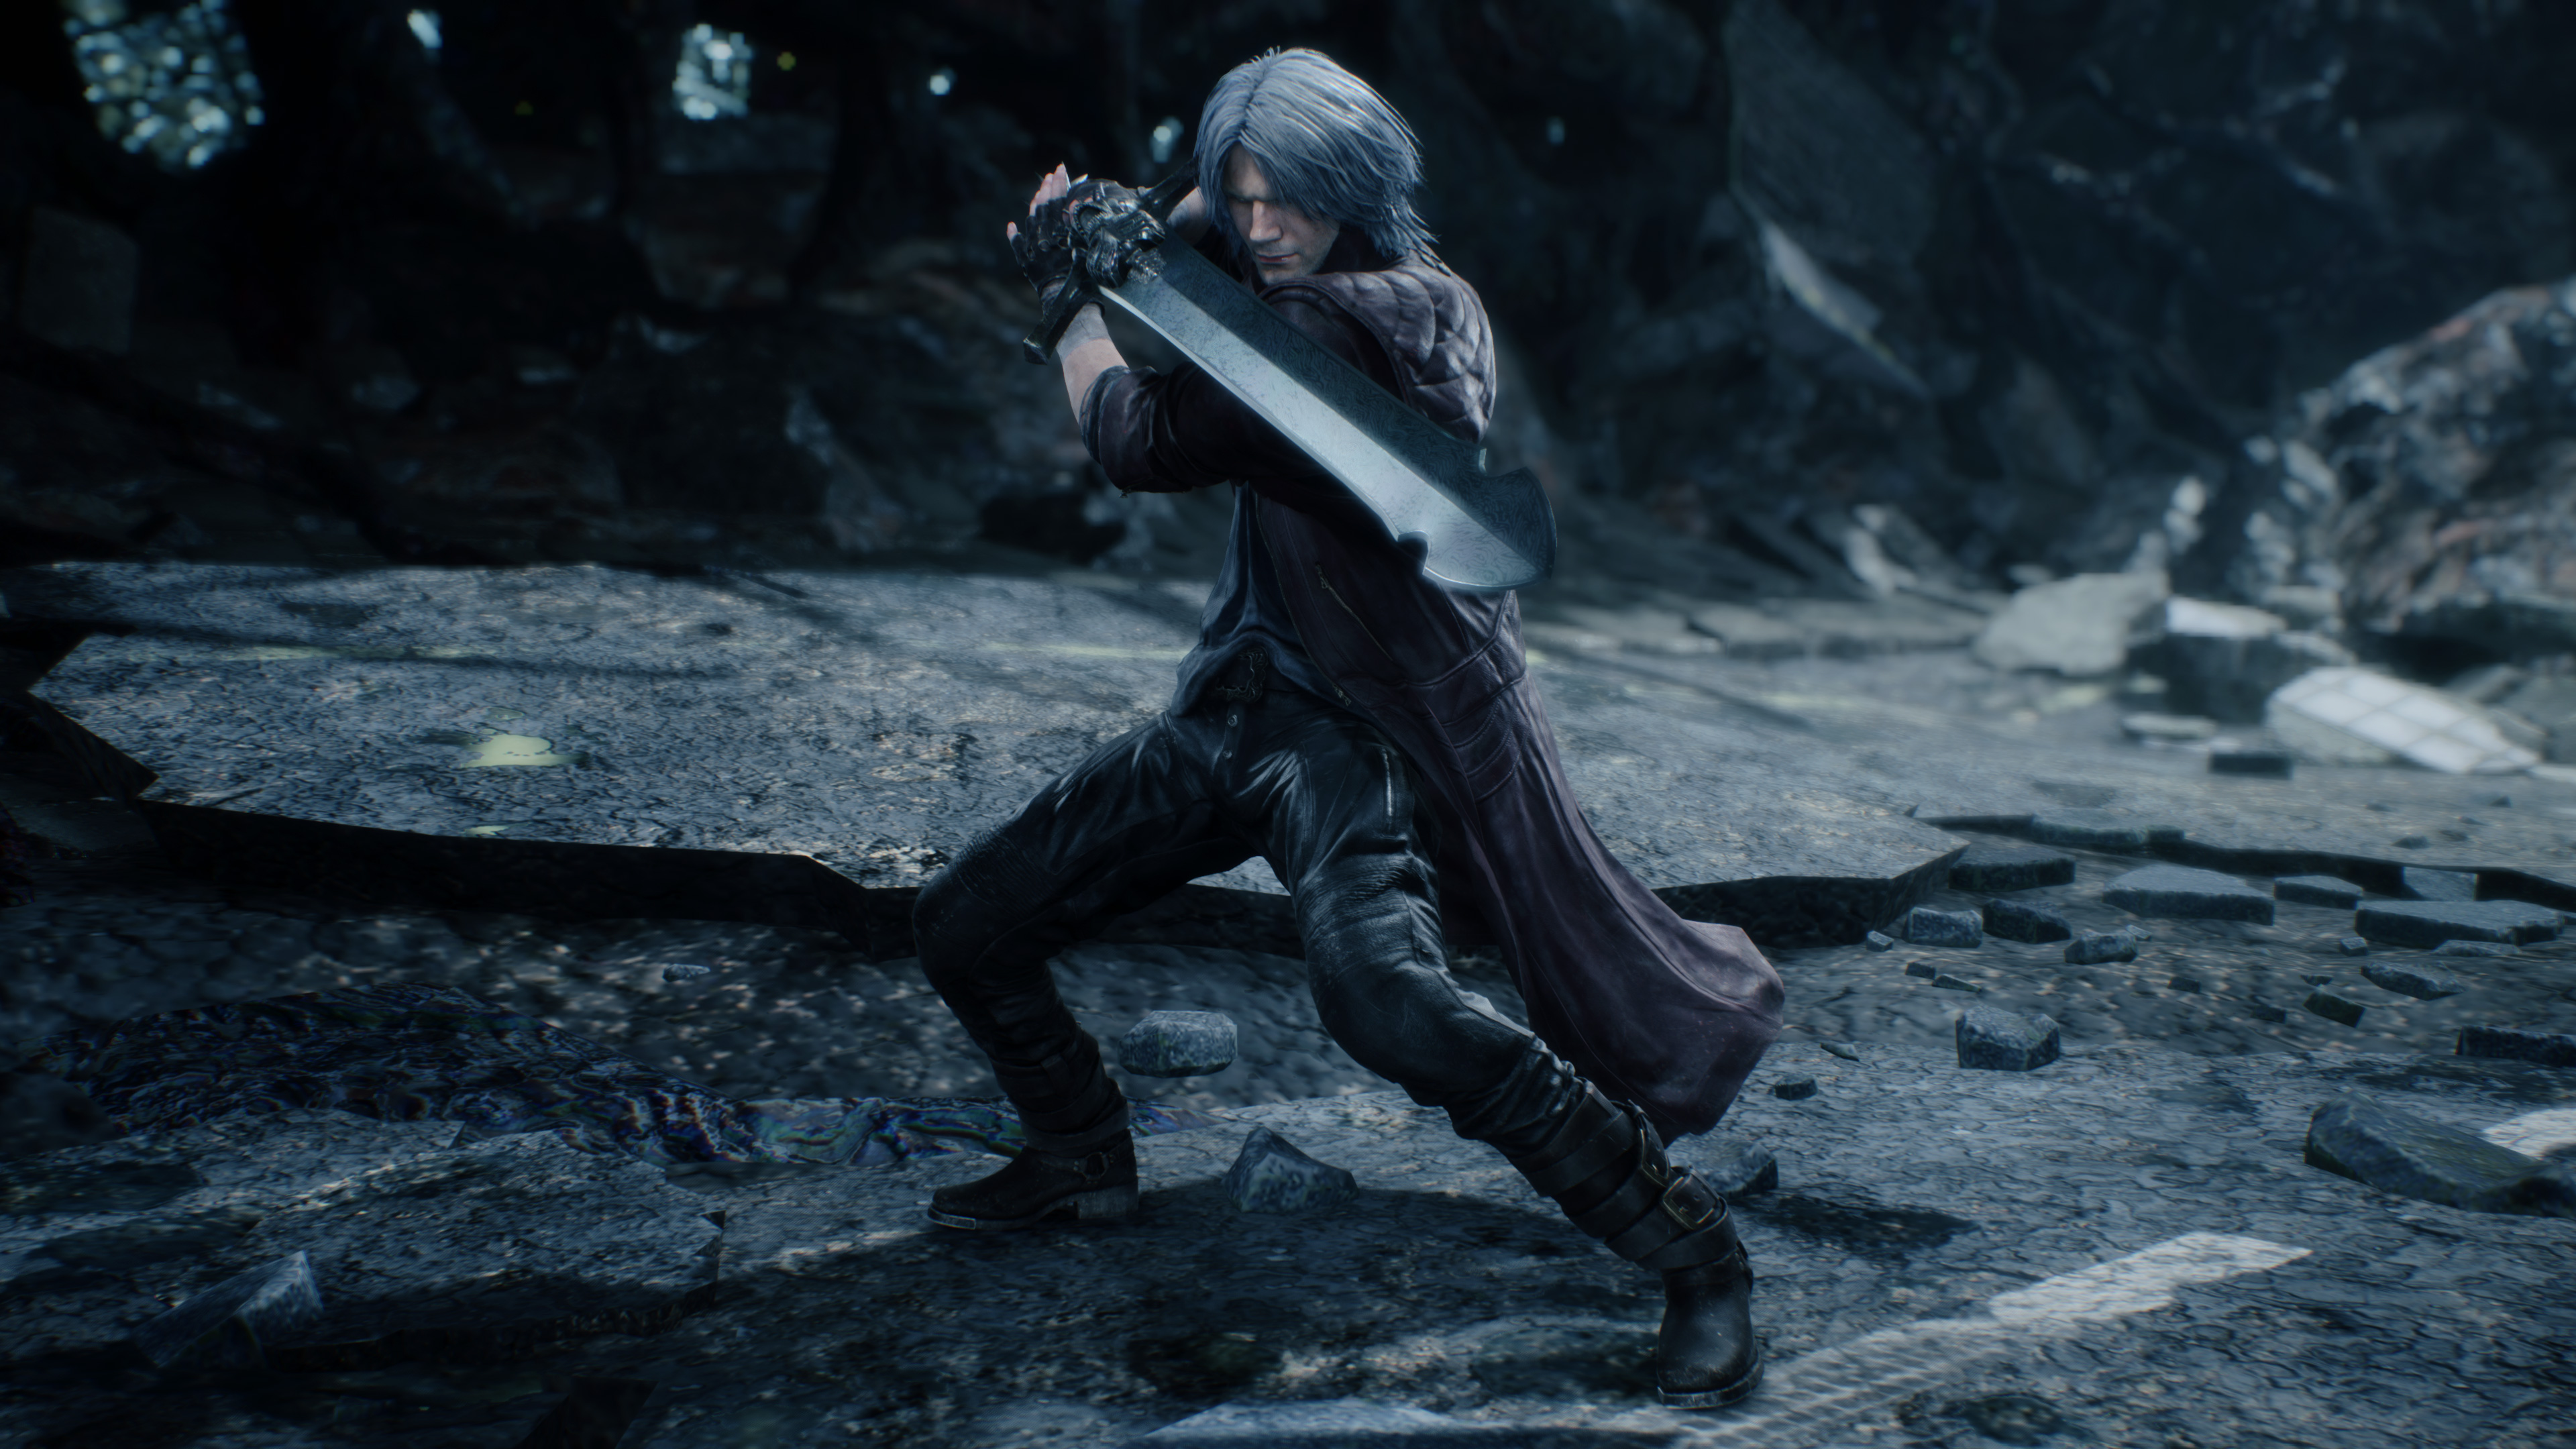 Devil May Cry 5 4k 2019, HD Games, 4k Wallpapers, Images